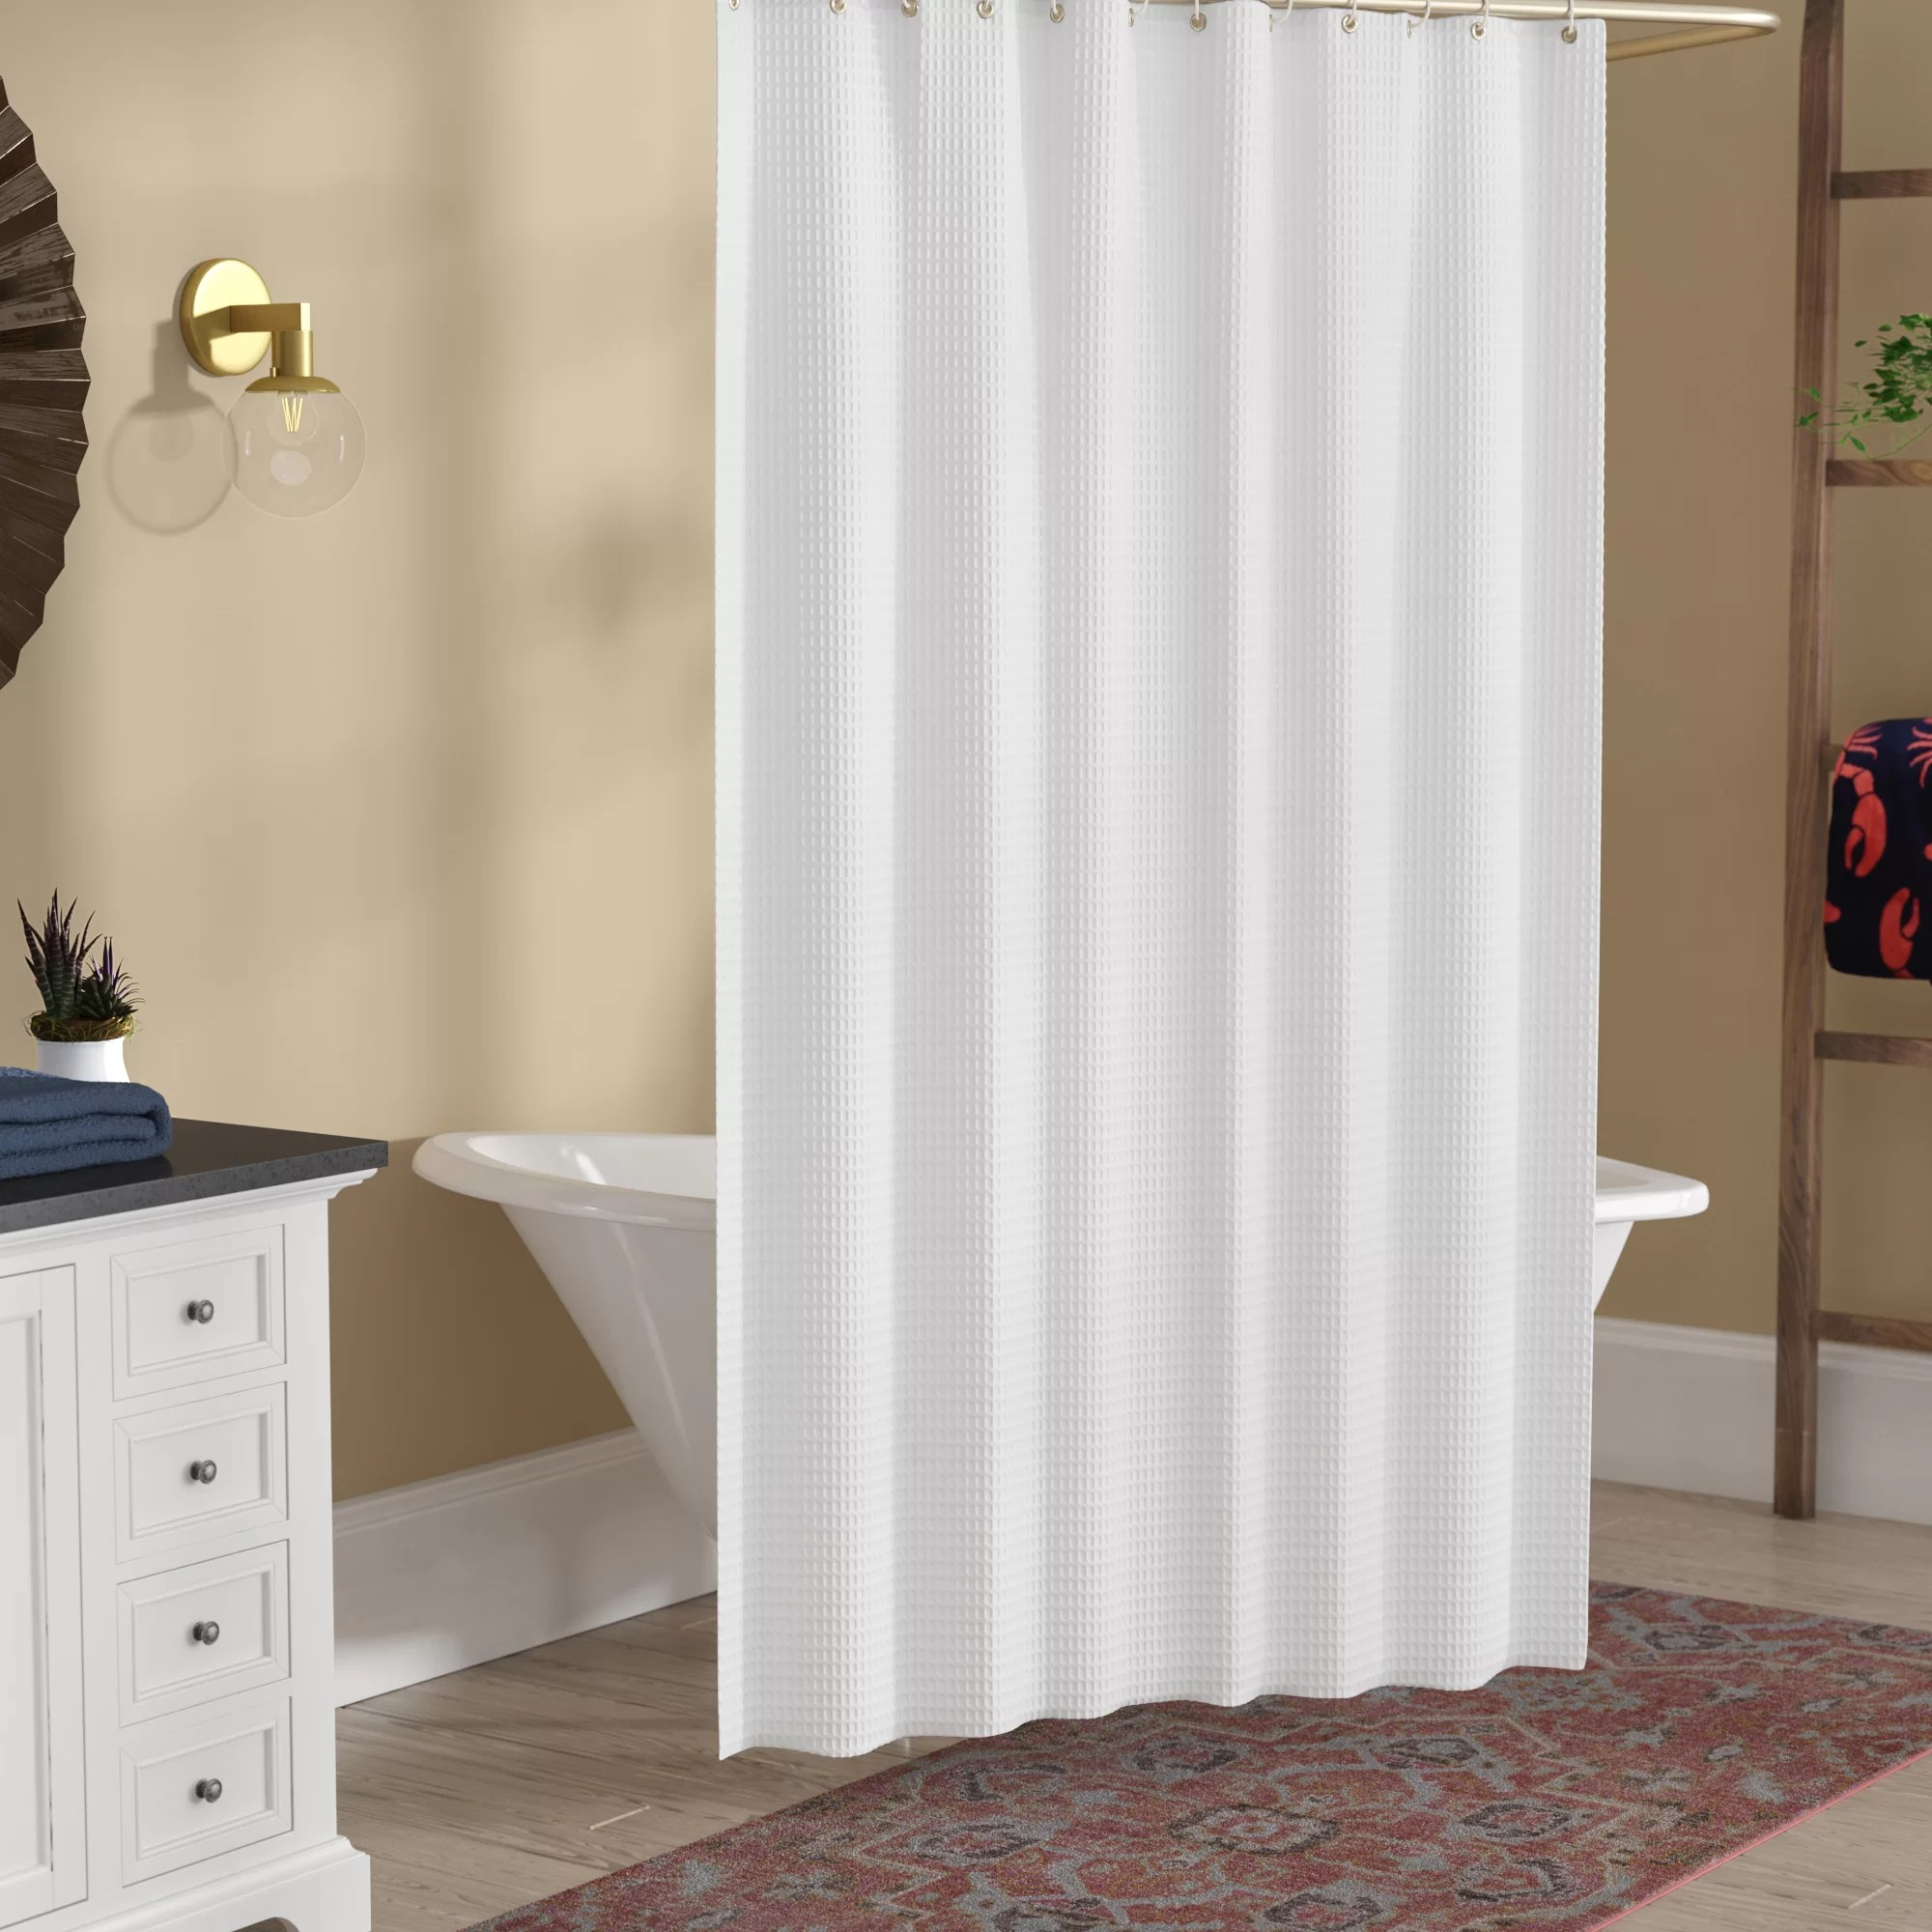 zella hotel spotted single shower curtain